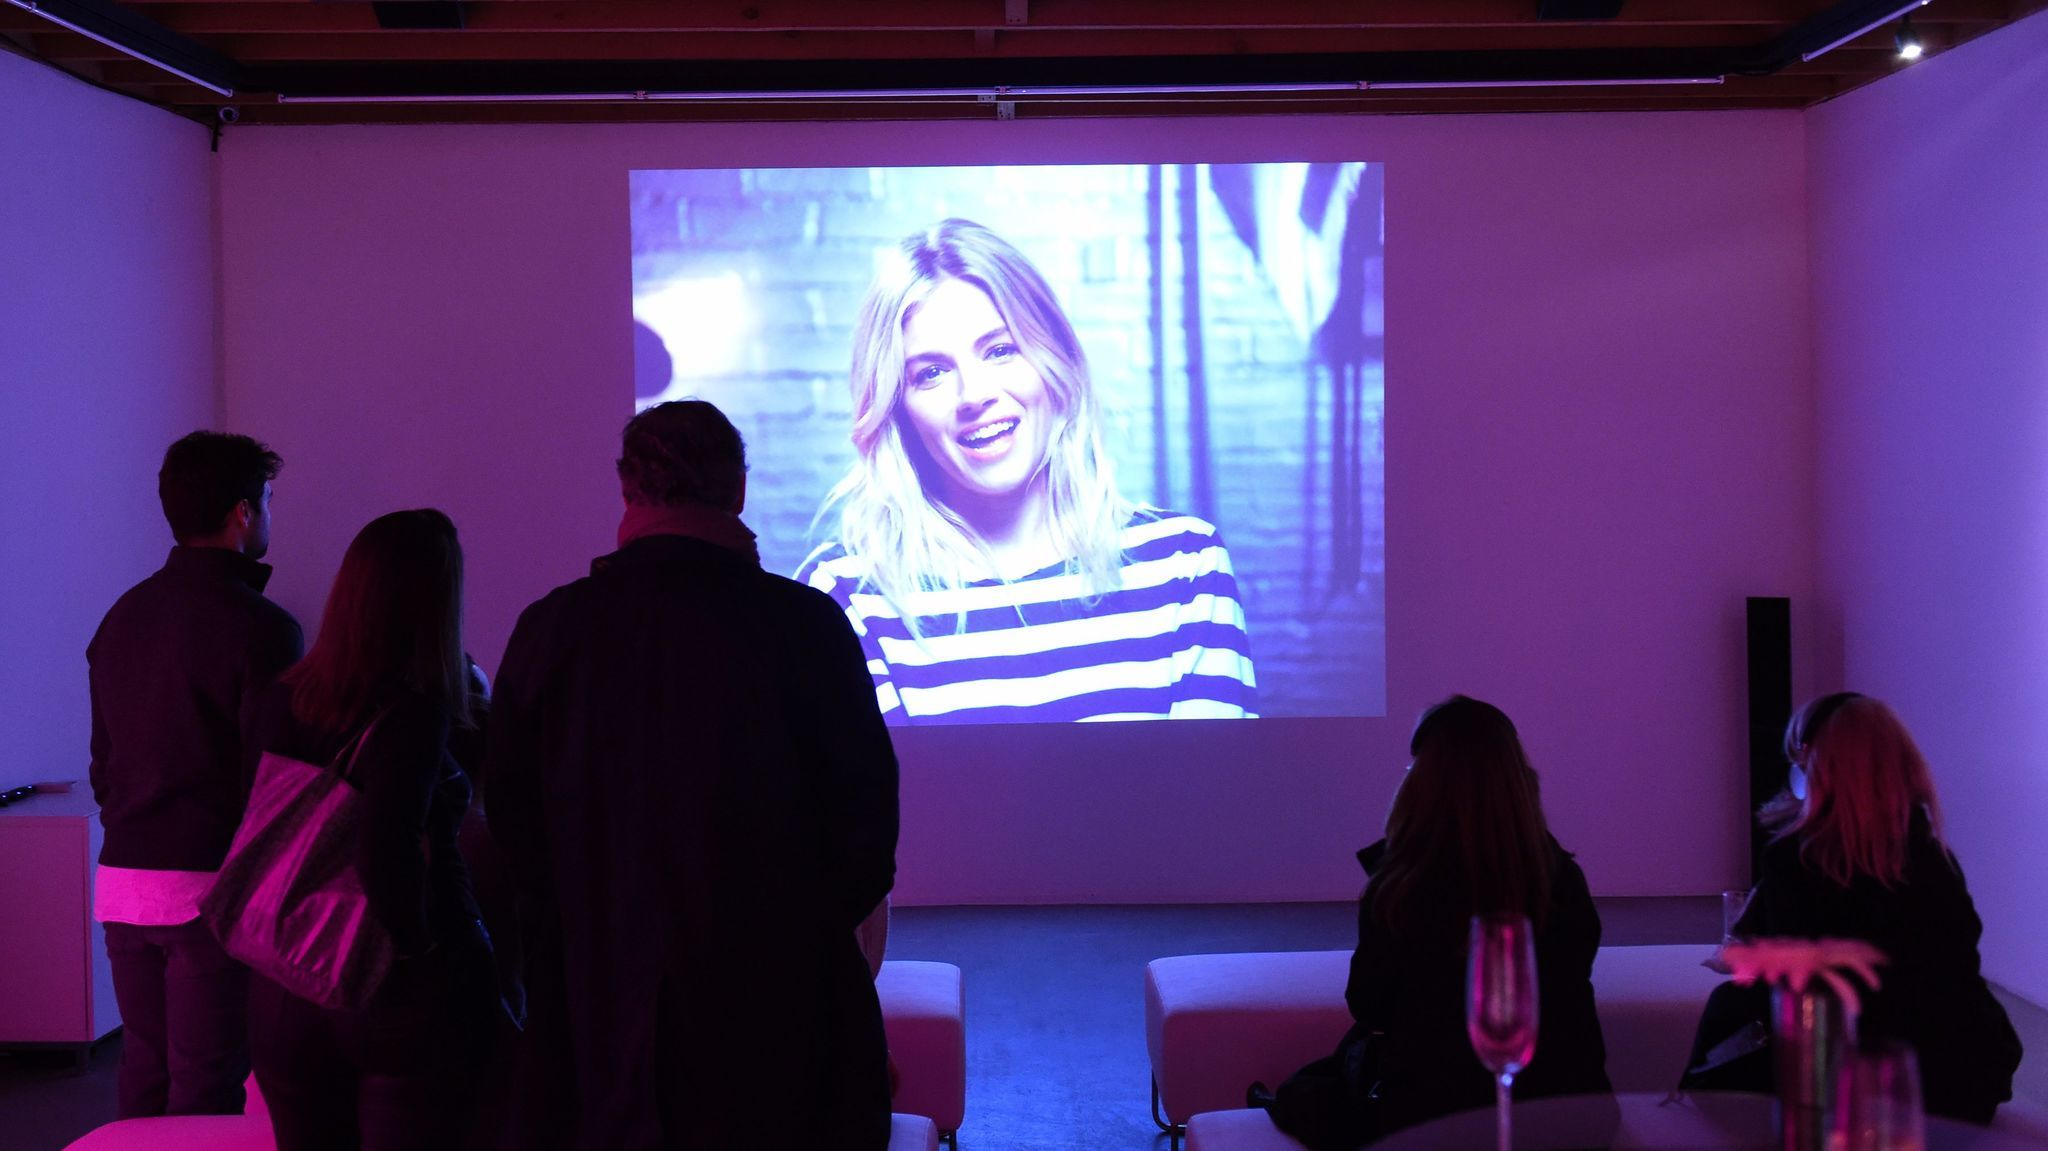 Sienna Miller appears in Chiara Clemente's video, photographed here during the preview party last week.